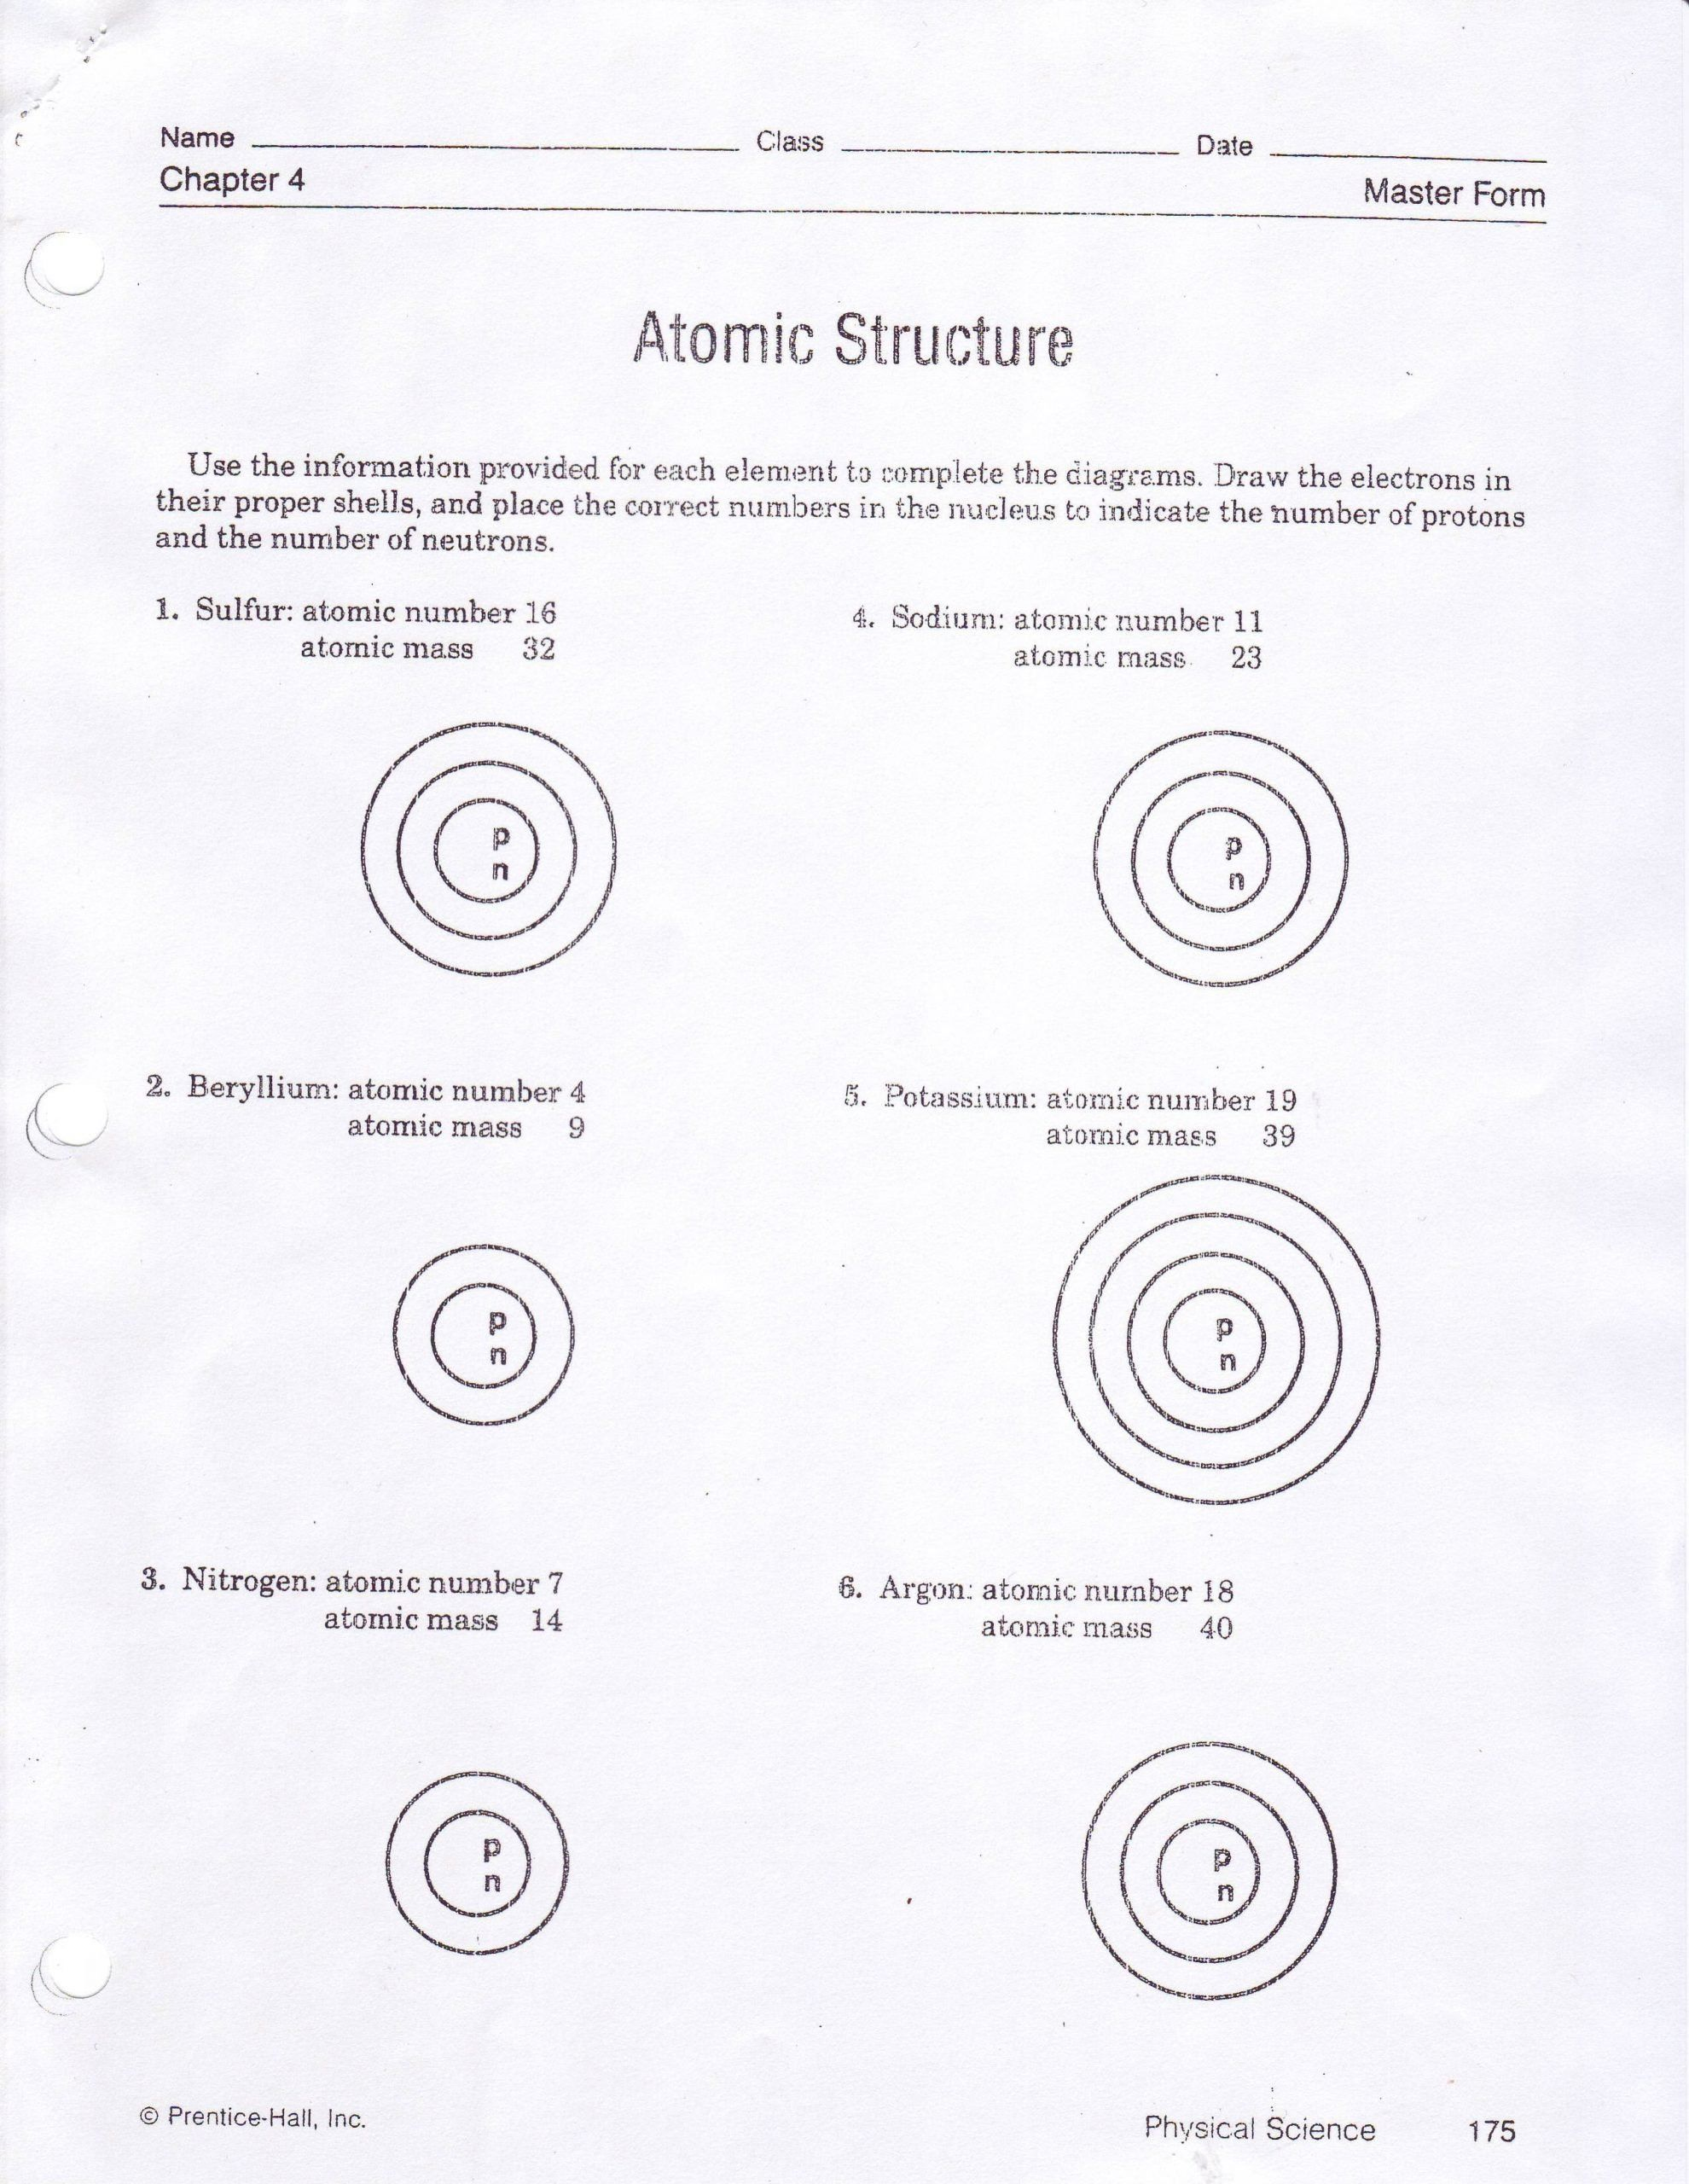 Atomic Structure Bohr Model Worksheet Integratedsciencei In 2020 Worksheets Simple Fractions Worksheets Atomic Theory